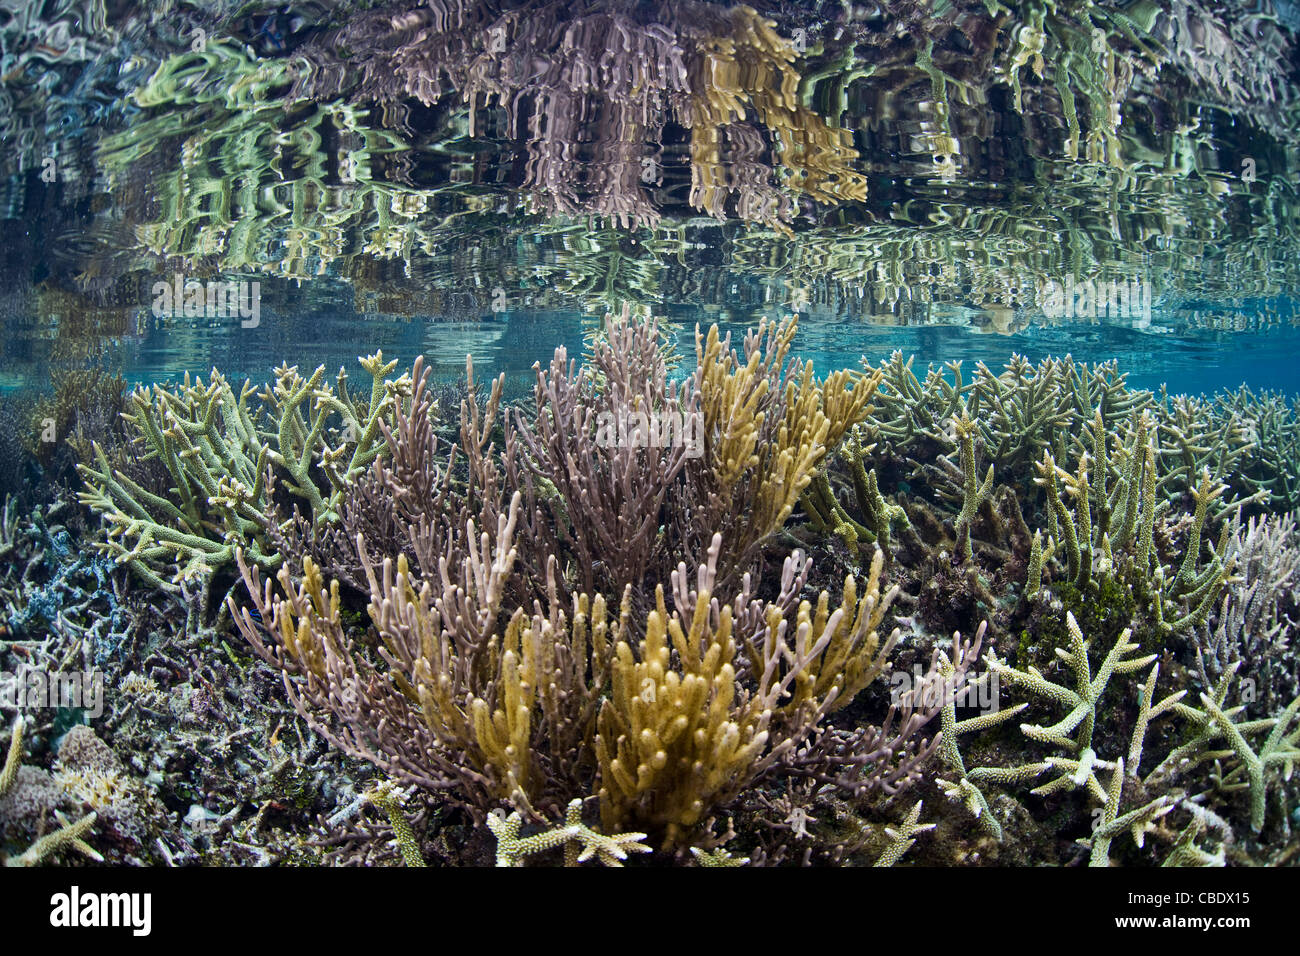 Staghorn corals, Acropora spp., compete with fast-growing gorgonians for space on a shallow coral reef in remote - Stock Image